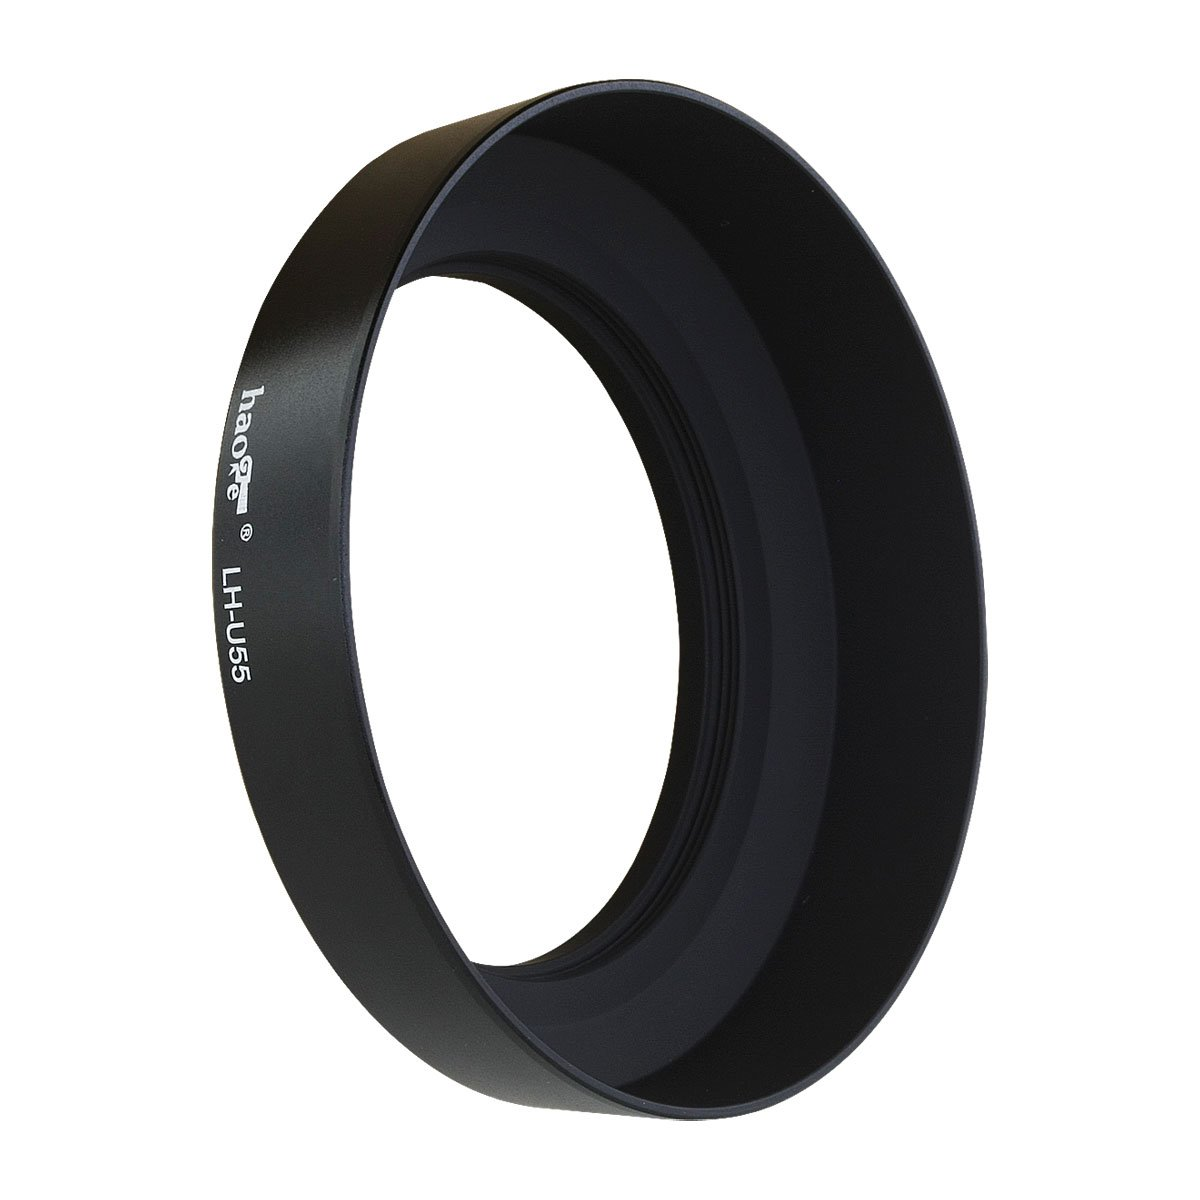 Haoge LH-U55 Universal Round Metal Screw-in Mount Lens Hood Shade for 55mm Canon Nikon Sony Minolta Nikkor Panasonic Pentax Contax Panasonic Olympus Lens and Other 55mm Filter Thread Lens